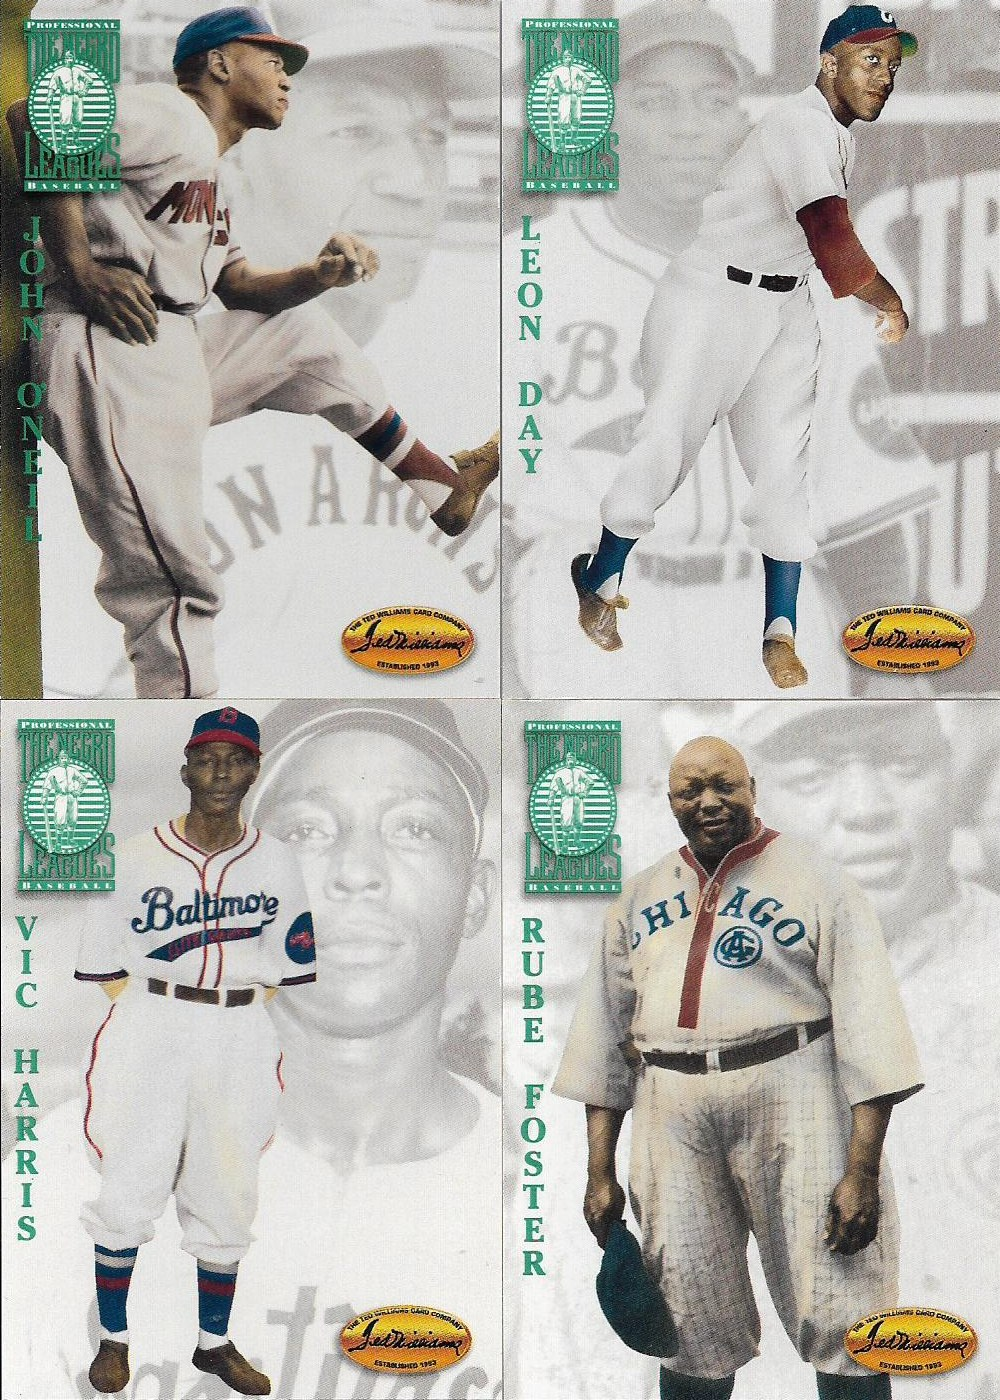 a history of the baseball cards Ten fun facts about baseball fact 1: 300,000 to 1 is the chances that a fan can be hit by a  nolan ryan had the longest career in baseball history that lasted 27.